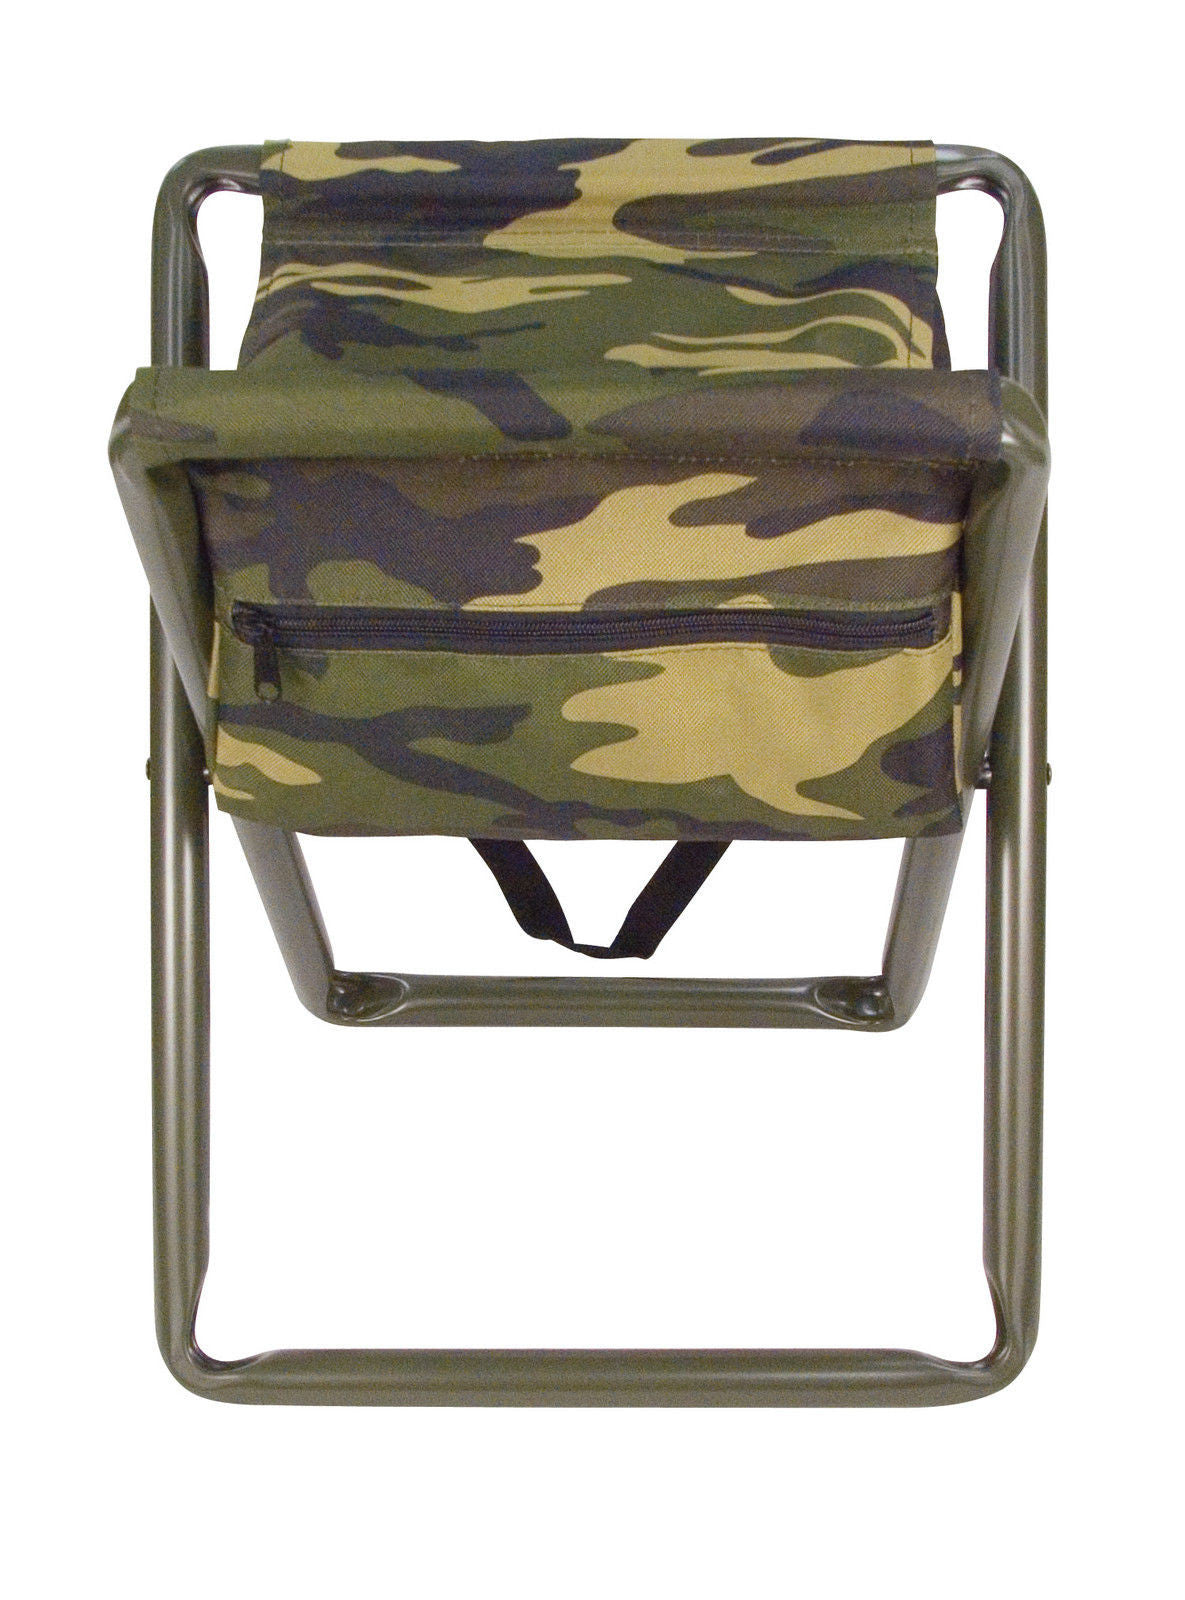 Pleasant Deluxe Camo Folding Camp Stool W Pouch Woodland Acu Digital Woodland Digital Pdpeps Interior Chair Design Pdpepsorg